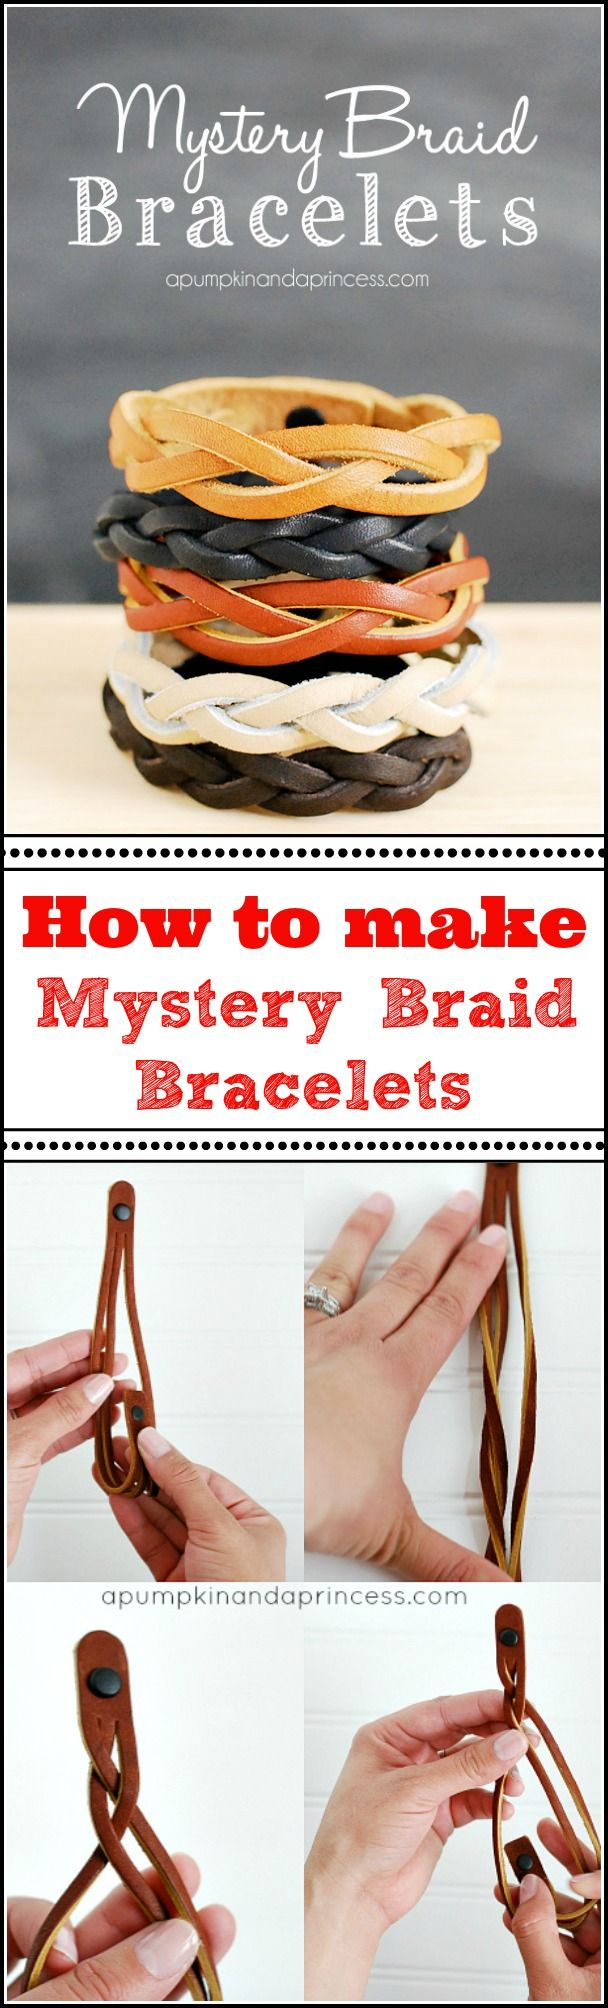 How to make a Mystery Braid Bracelet - A Pumpkin And A Princess